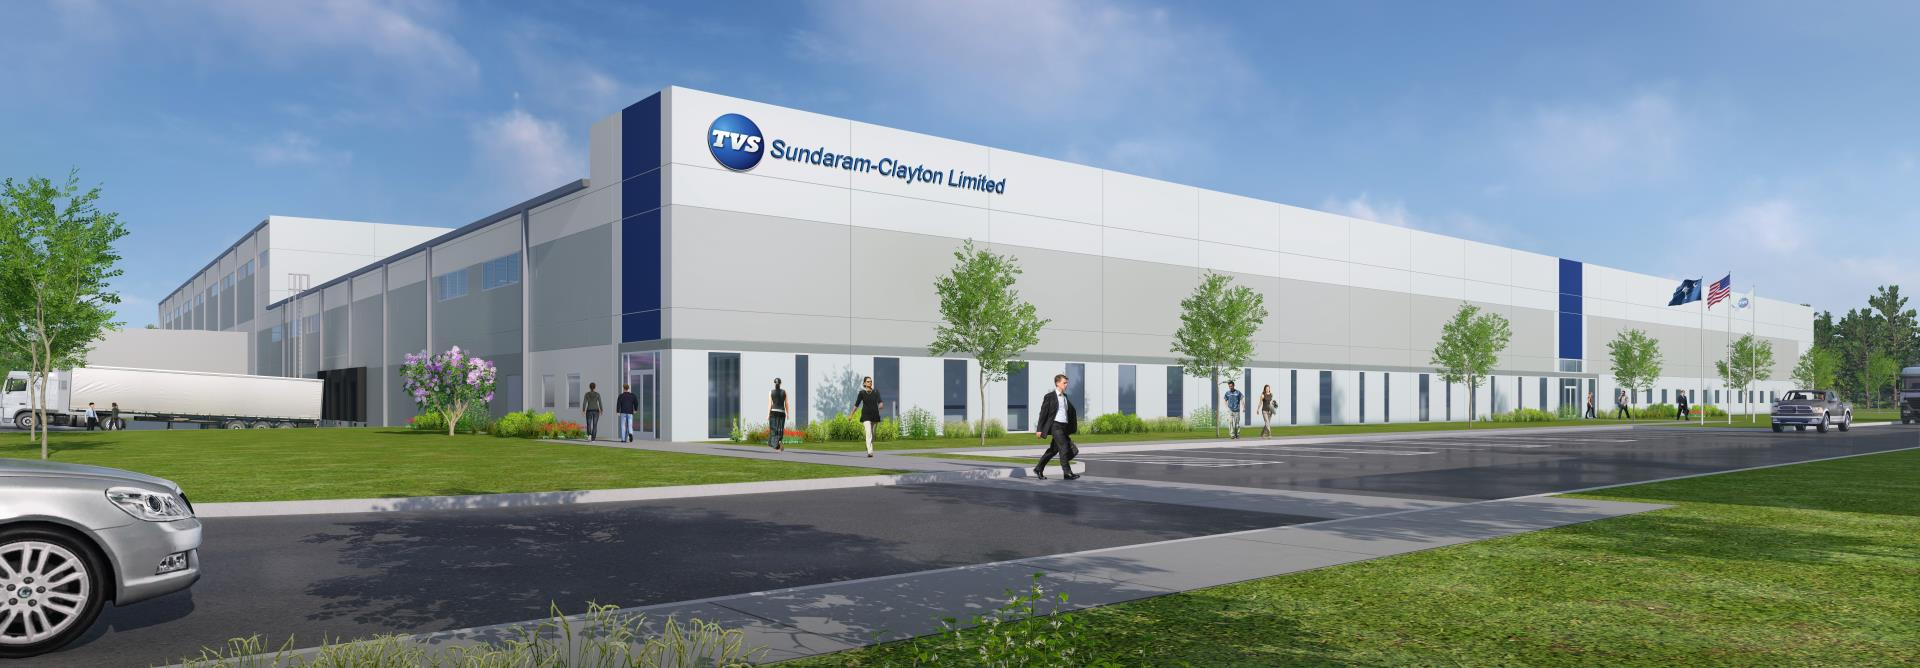 rendering of the Sundaram-Clayton facility at the Ridgeville Industrial Park